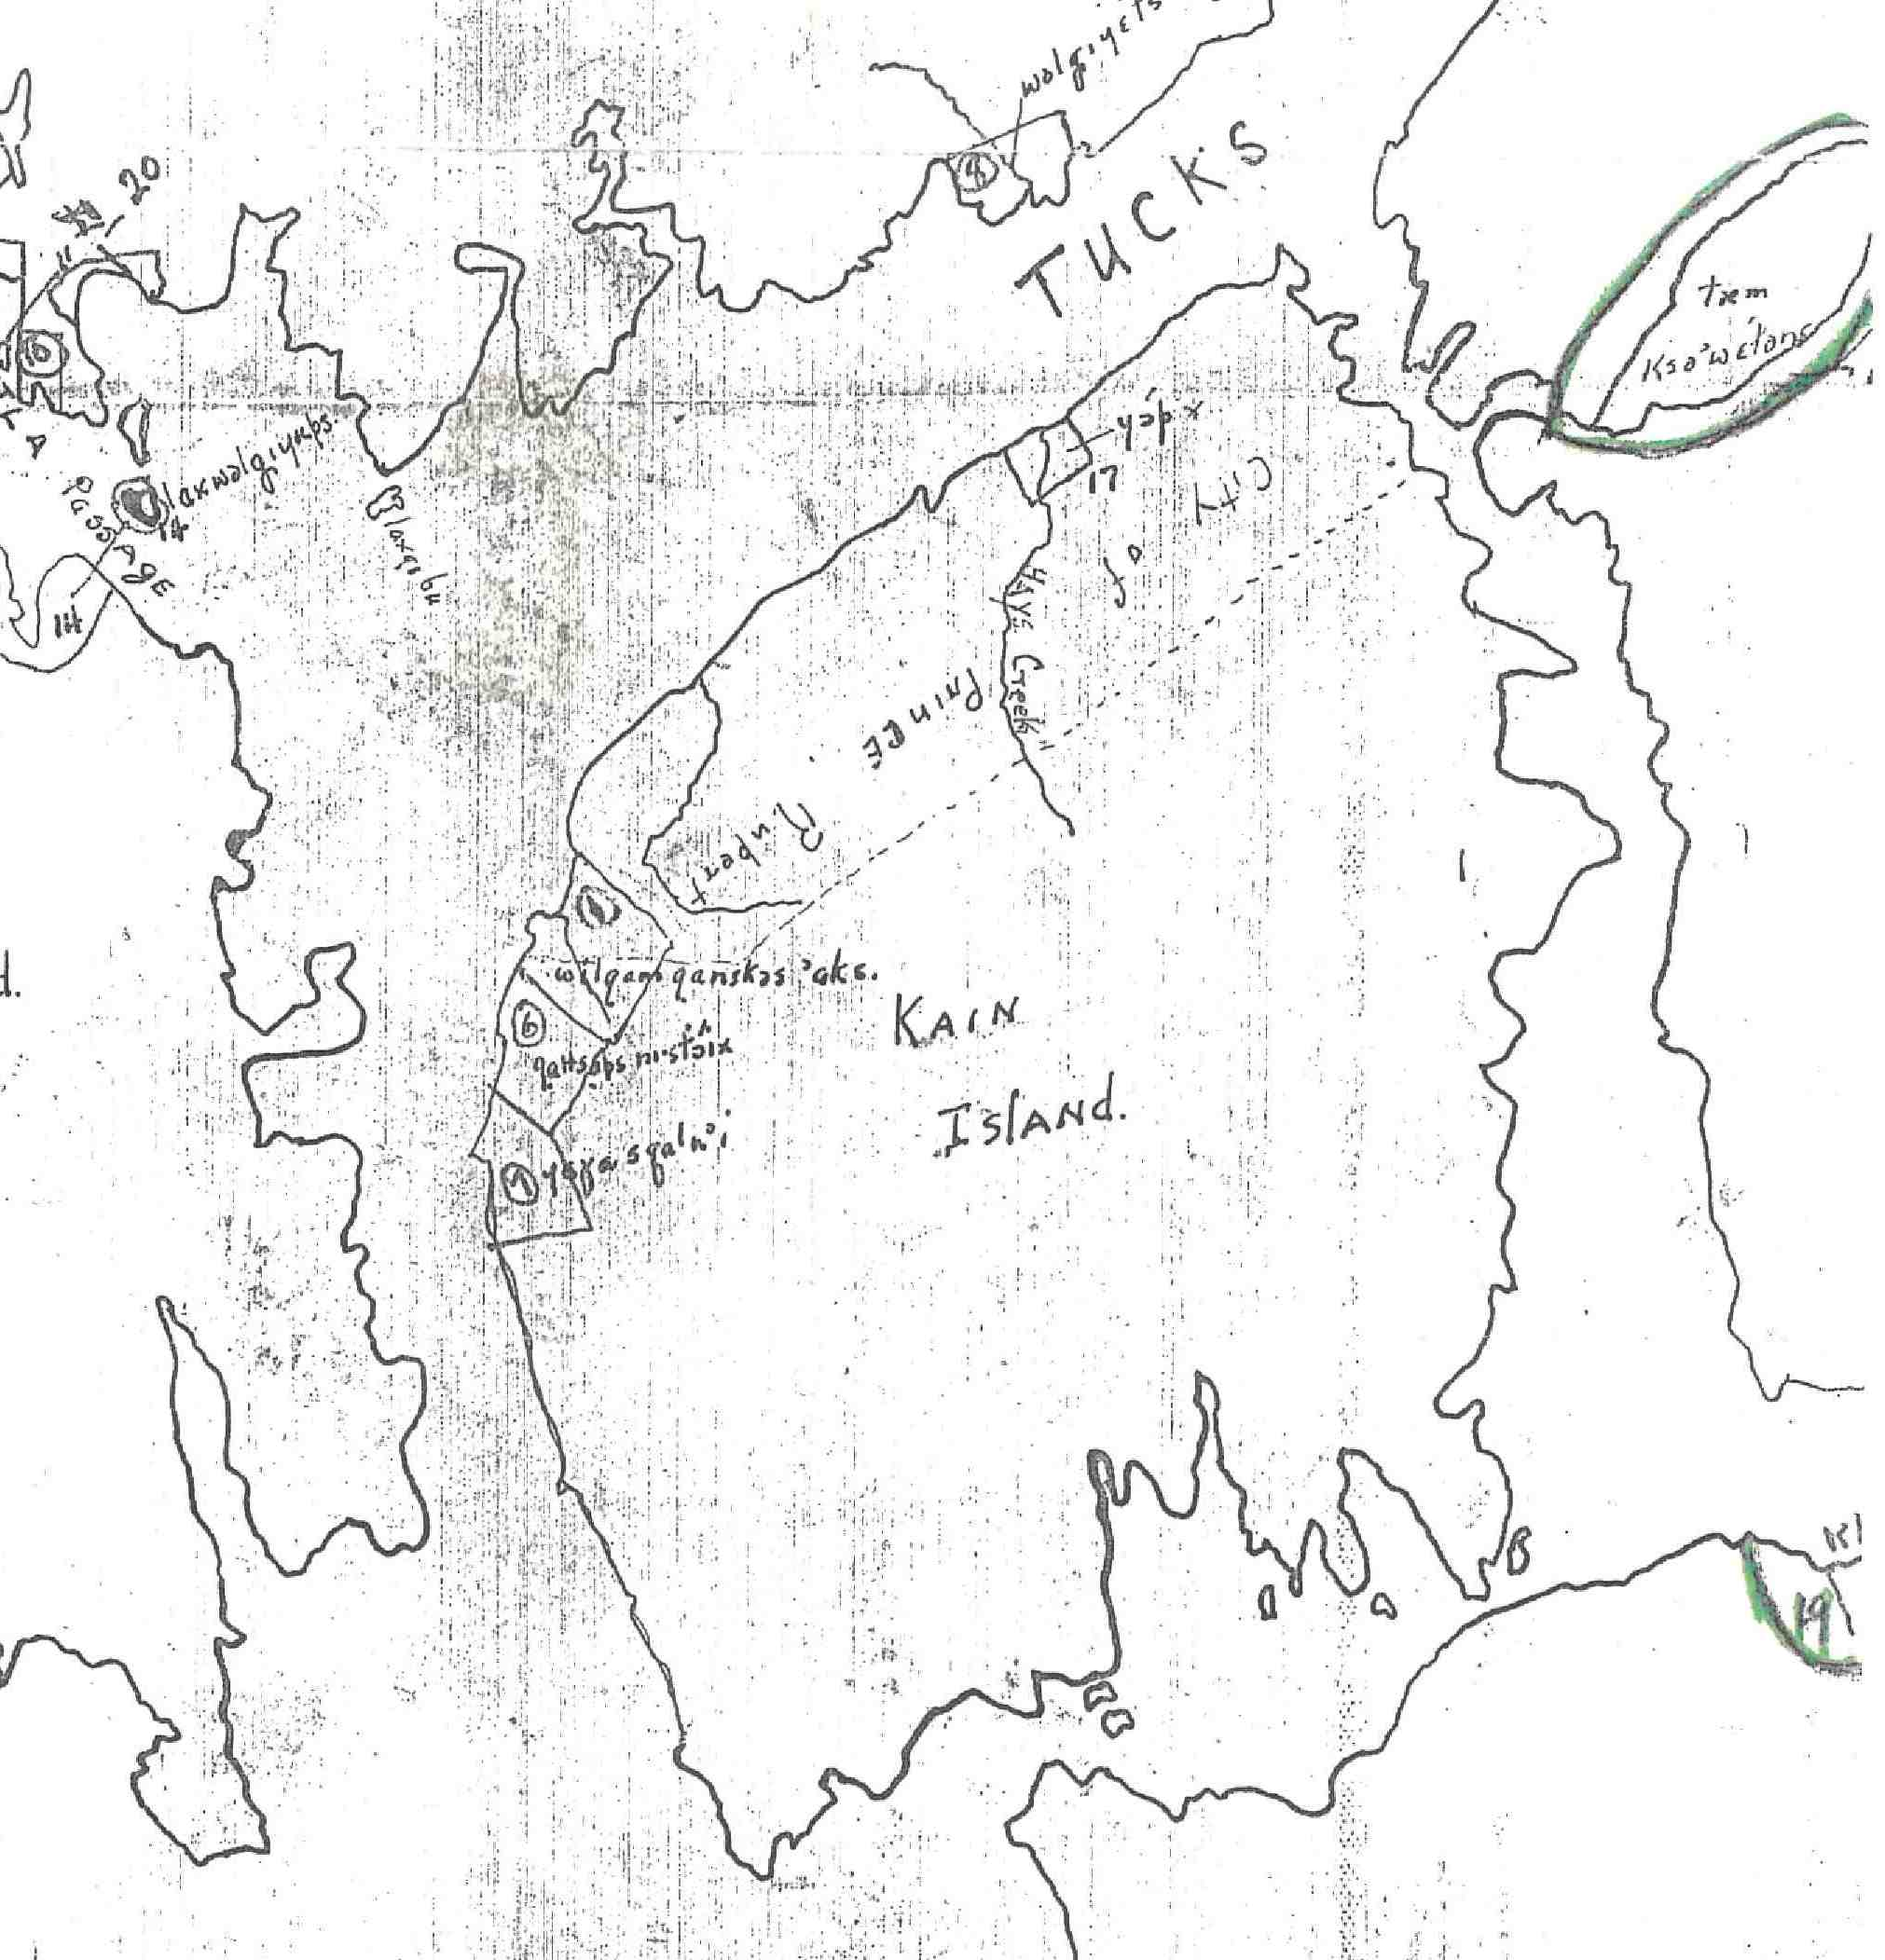 Ancient names resurface for archaeological sites in Prince Rupert